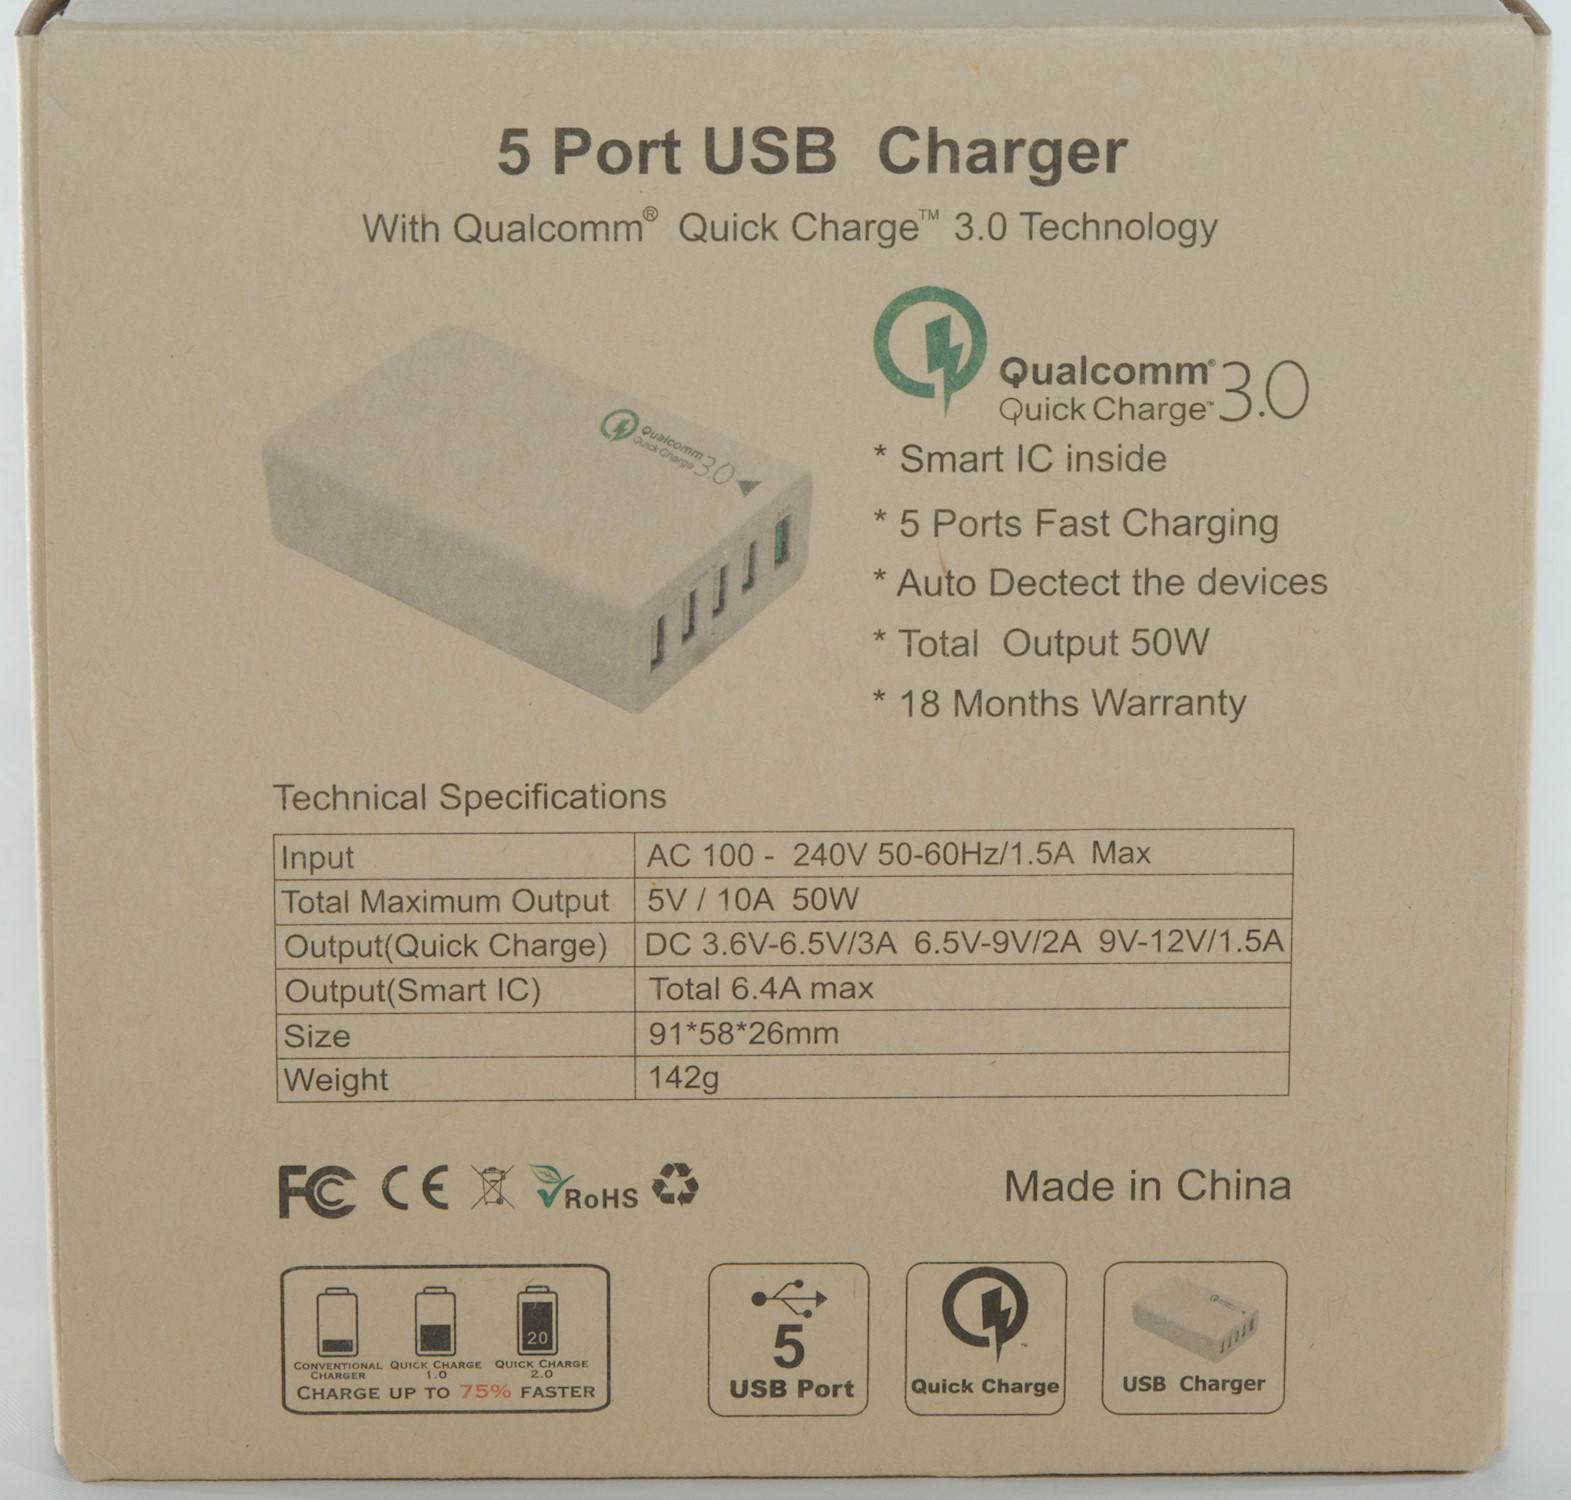 Test Review Of Fonken 5 Port Usb Charger Qc3 5u01q3 5v 10a 50w Offline Switching Power Supply Circuit Diagram Dsc 6494